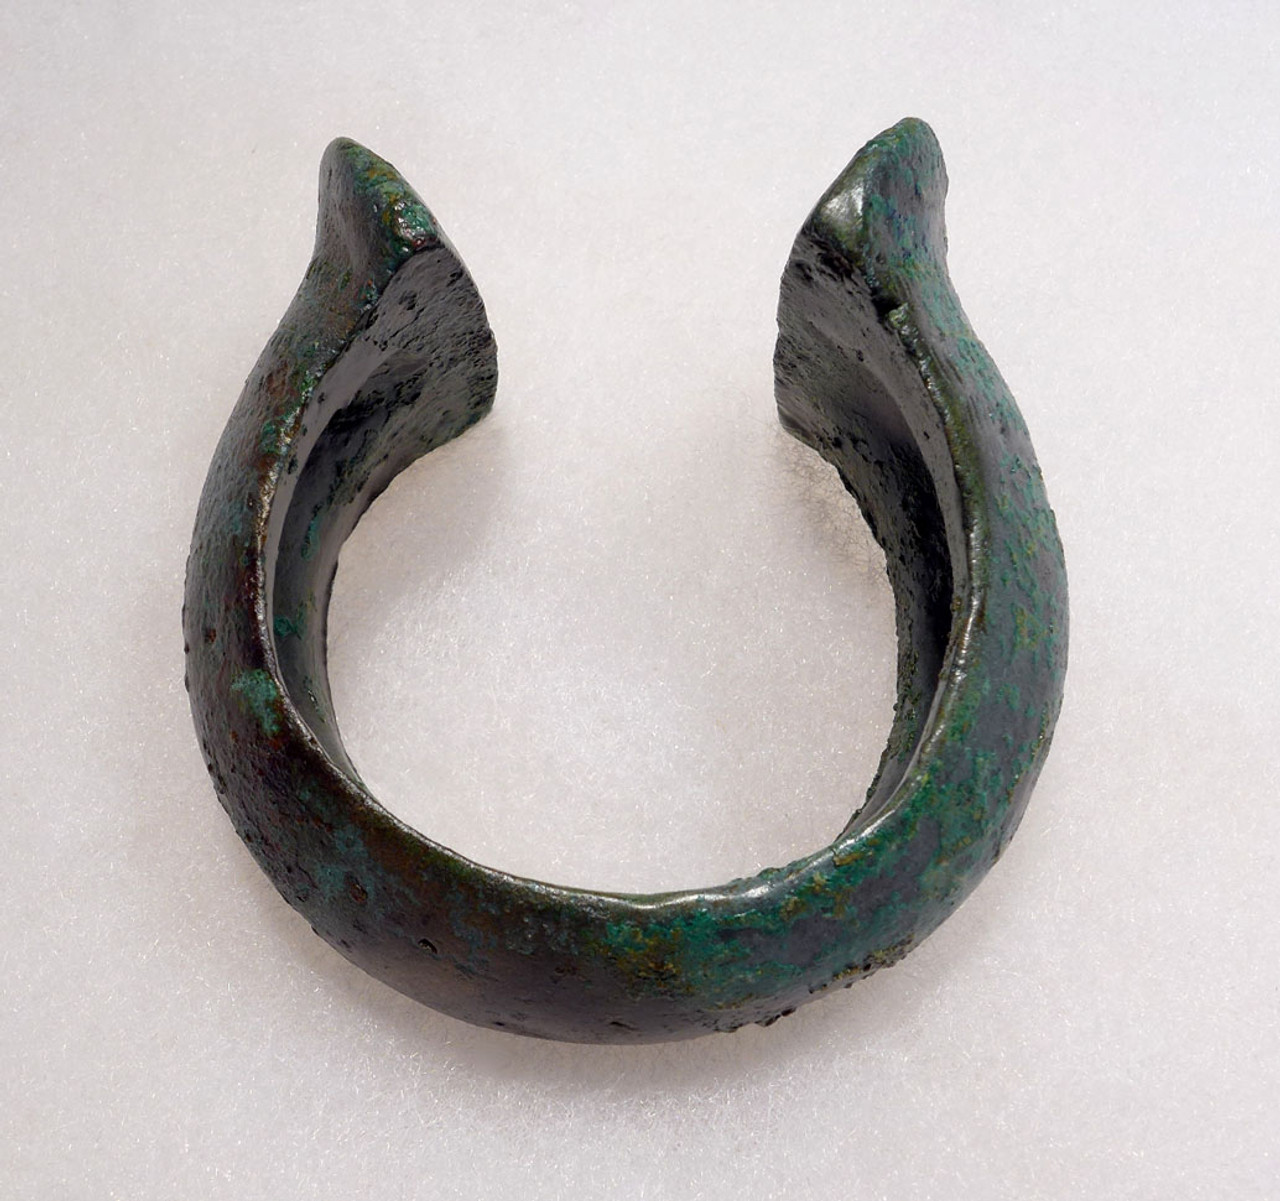 HEAVY ANCIENT LURISTAN BRONZE CUFF BANGLE BRACELET FOR A CHILD OF NOBLE CLASS  *LUR146